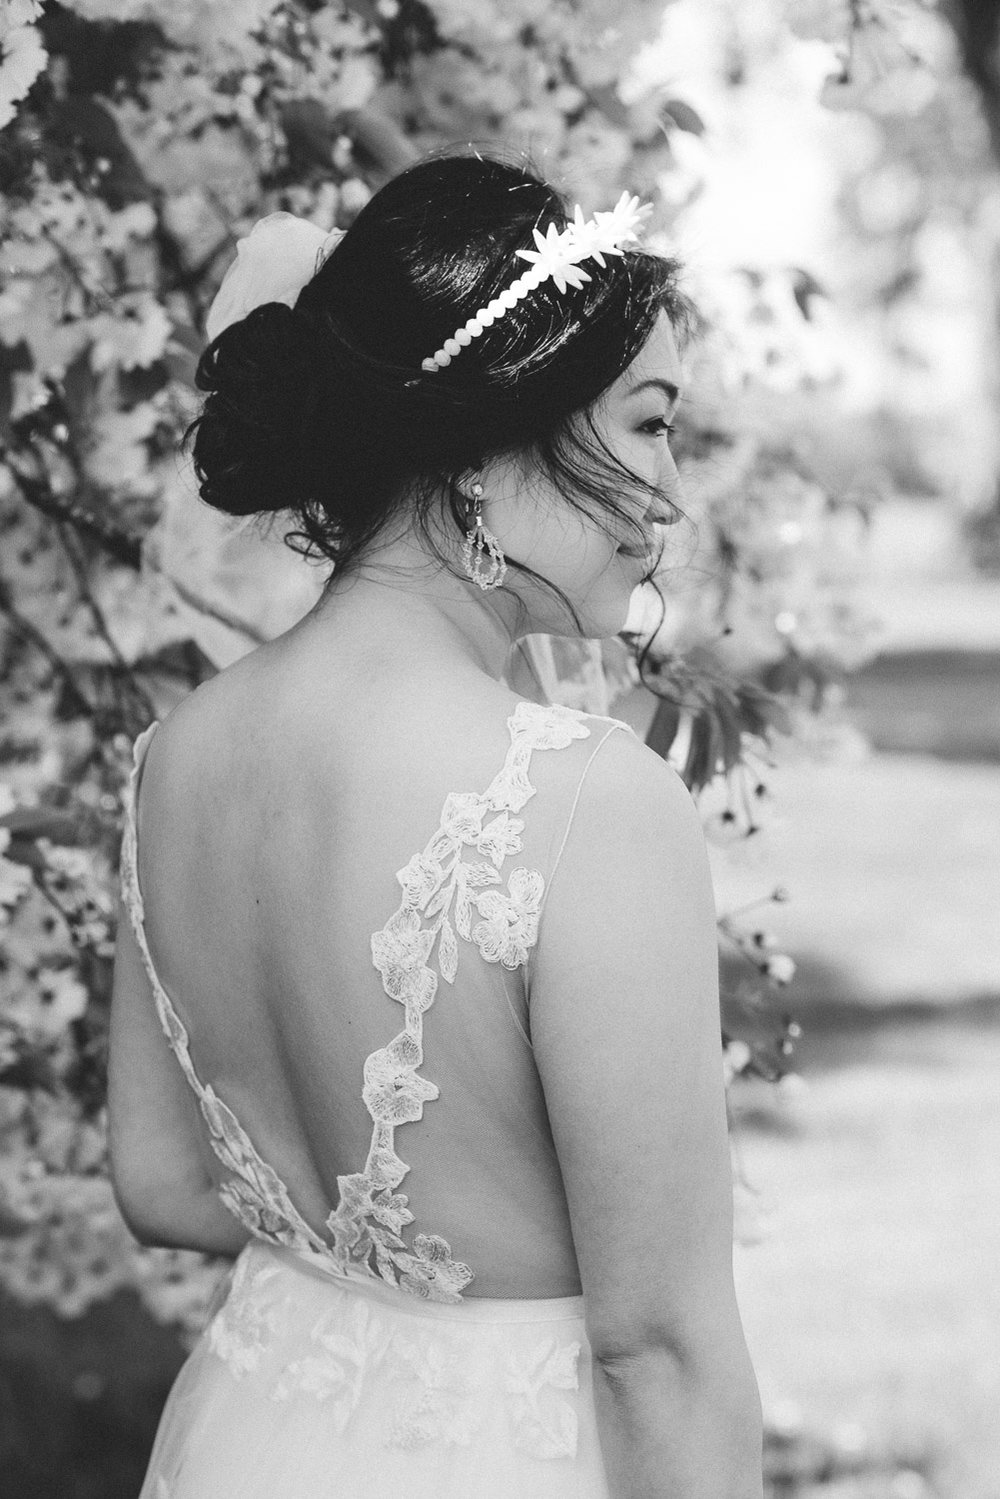 back view of bride and dress